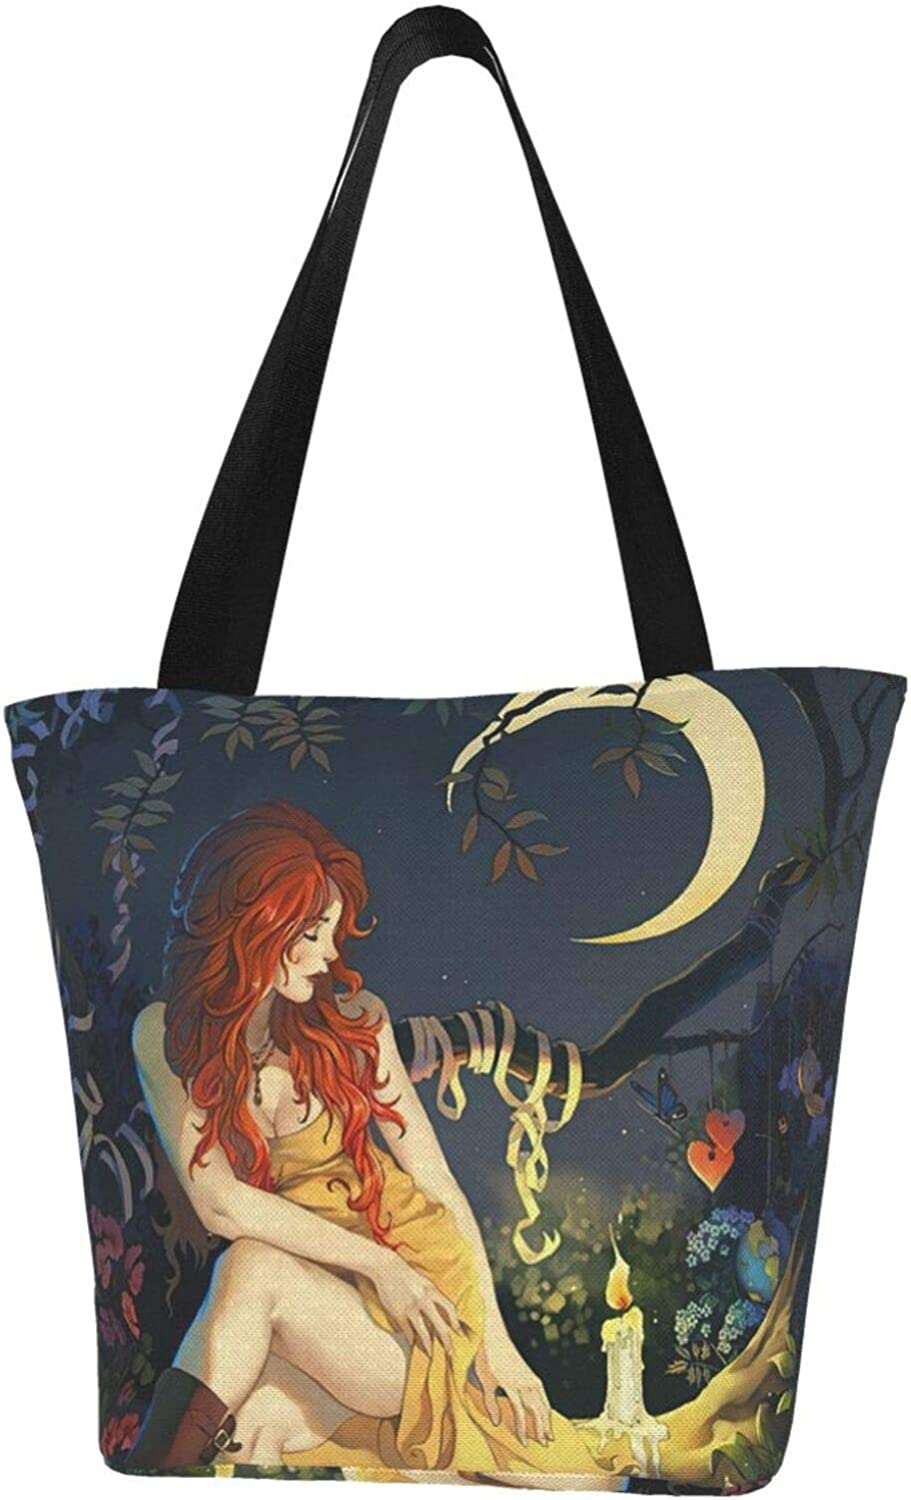 Wicca Wiccan Star Pentagram Candle Witch Themed Printed Women Canvas Handbag Zipper Shoulder Bag Work Booksbag Tote Purse Leisure Hobo Bag For Shopping